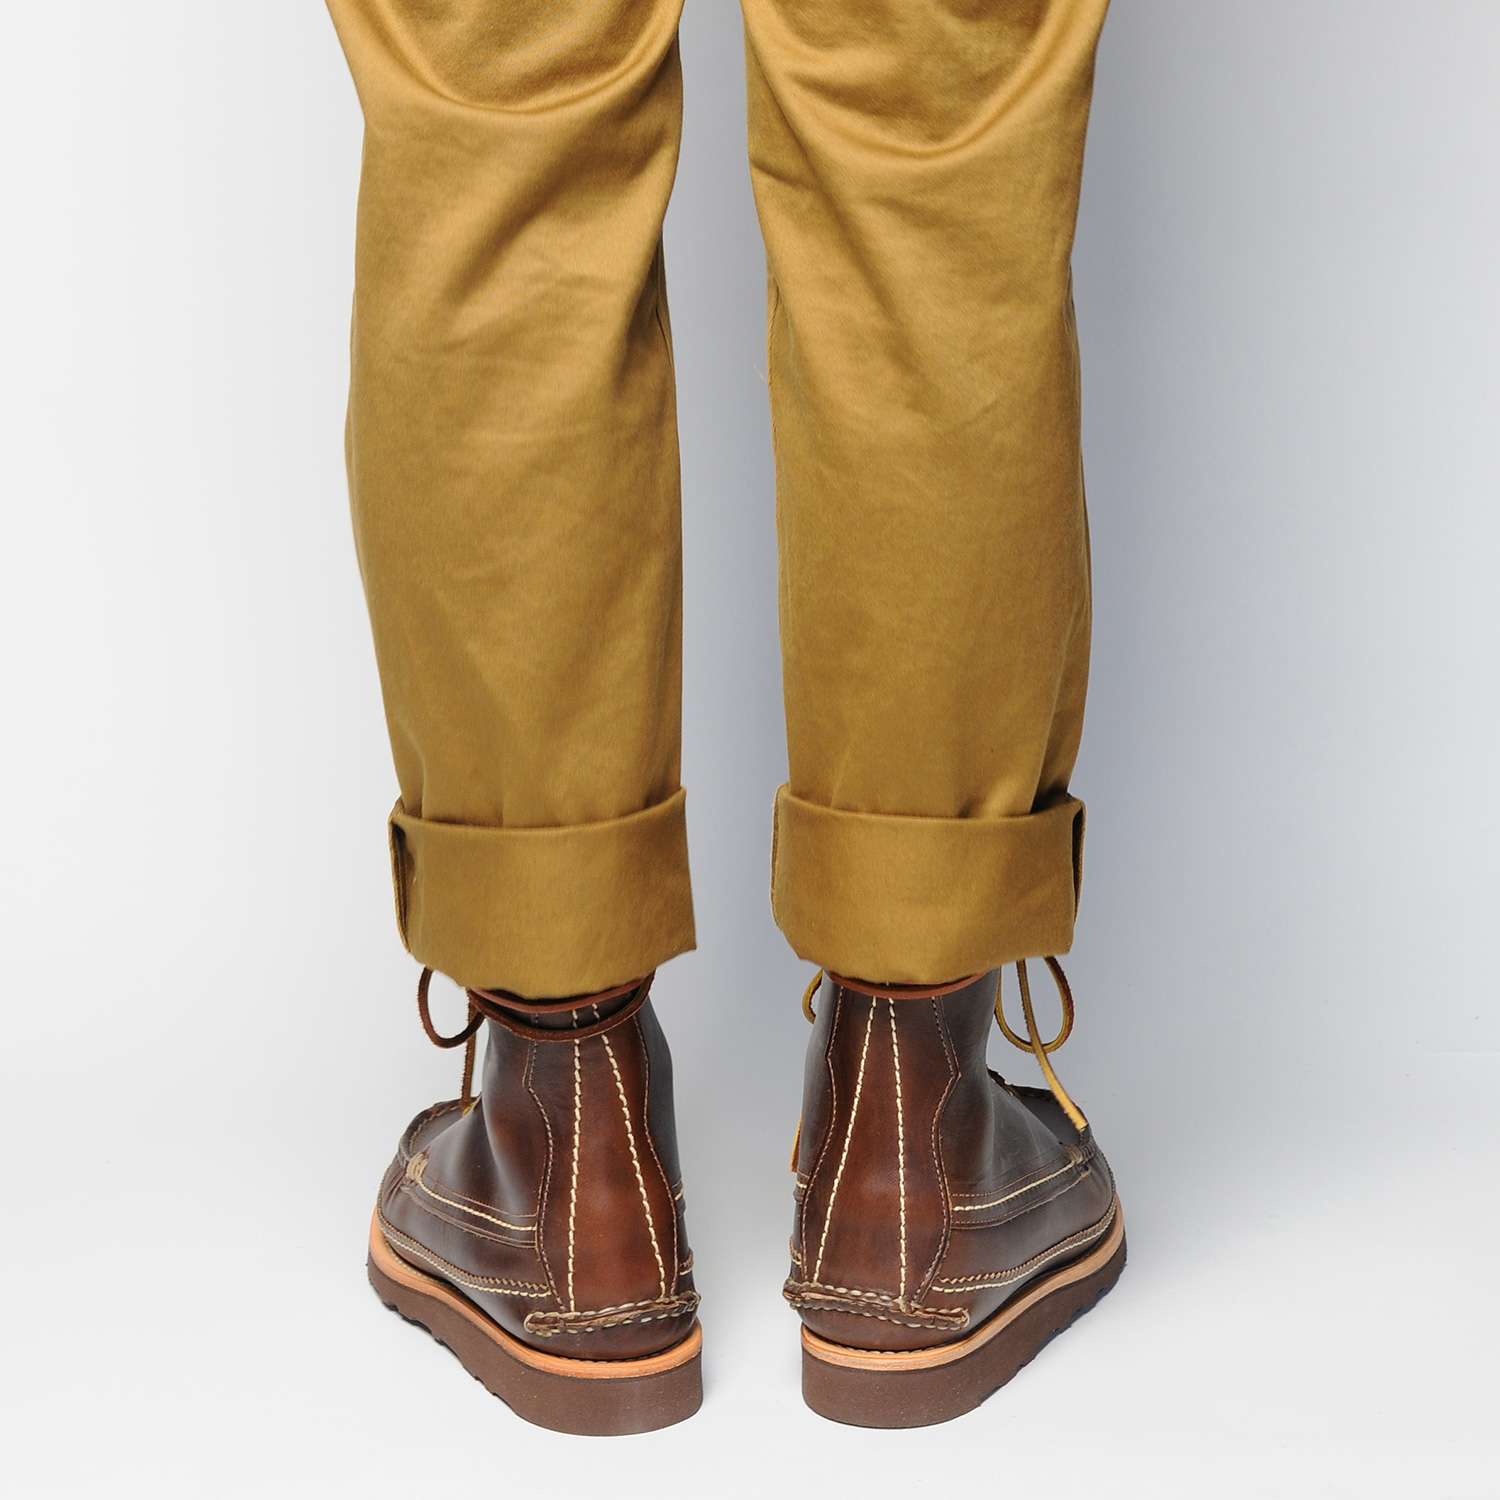 MAINE-GUIDE-DB-BOOTS,-G-BROWN,-WEAR-BACK.jpg